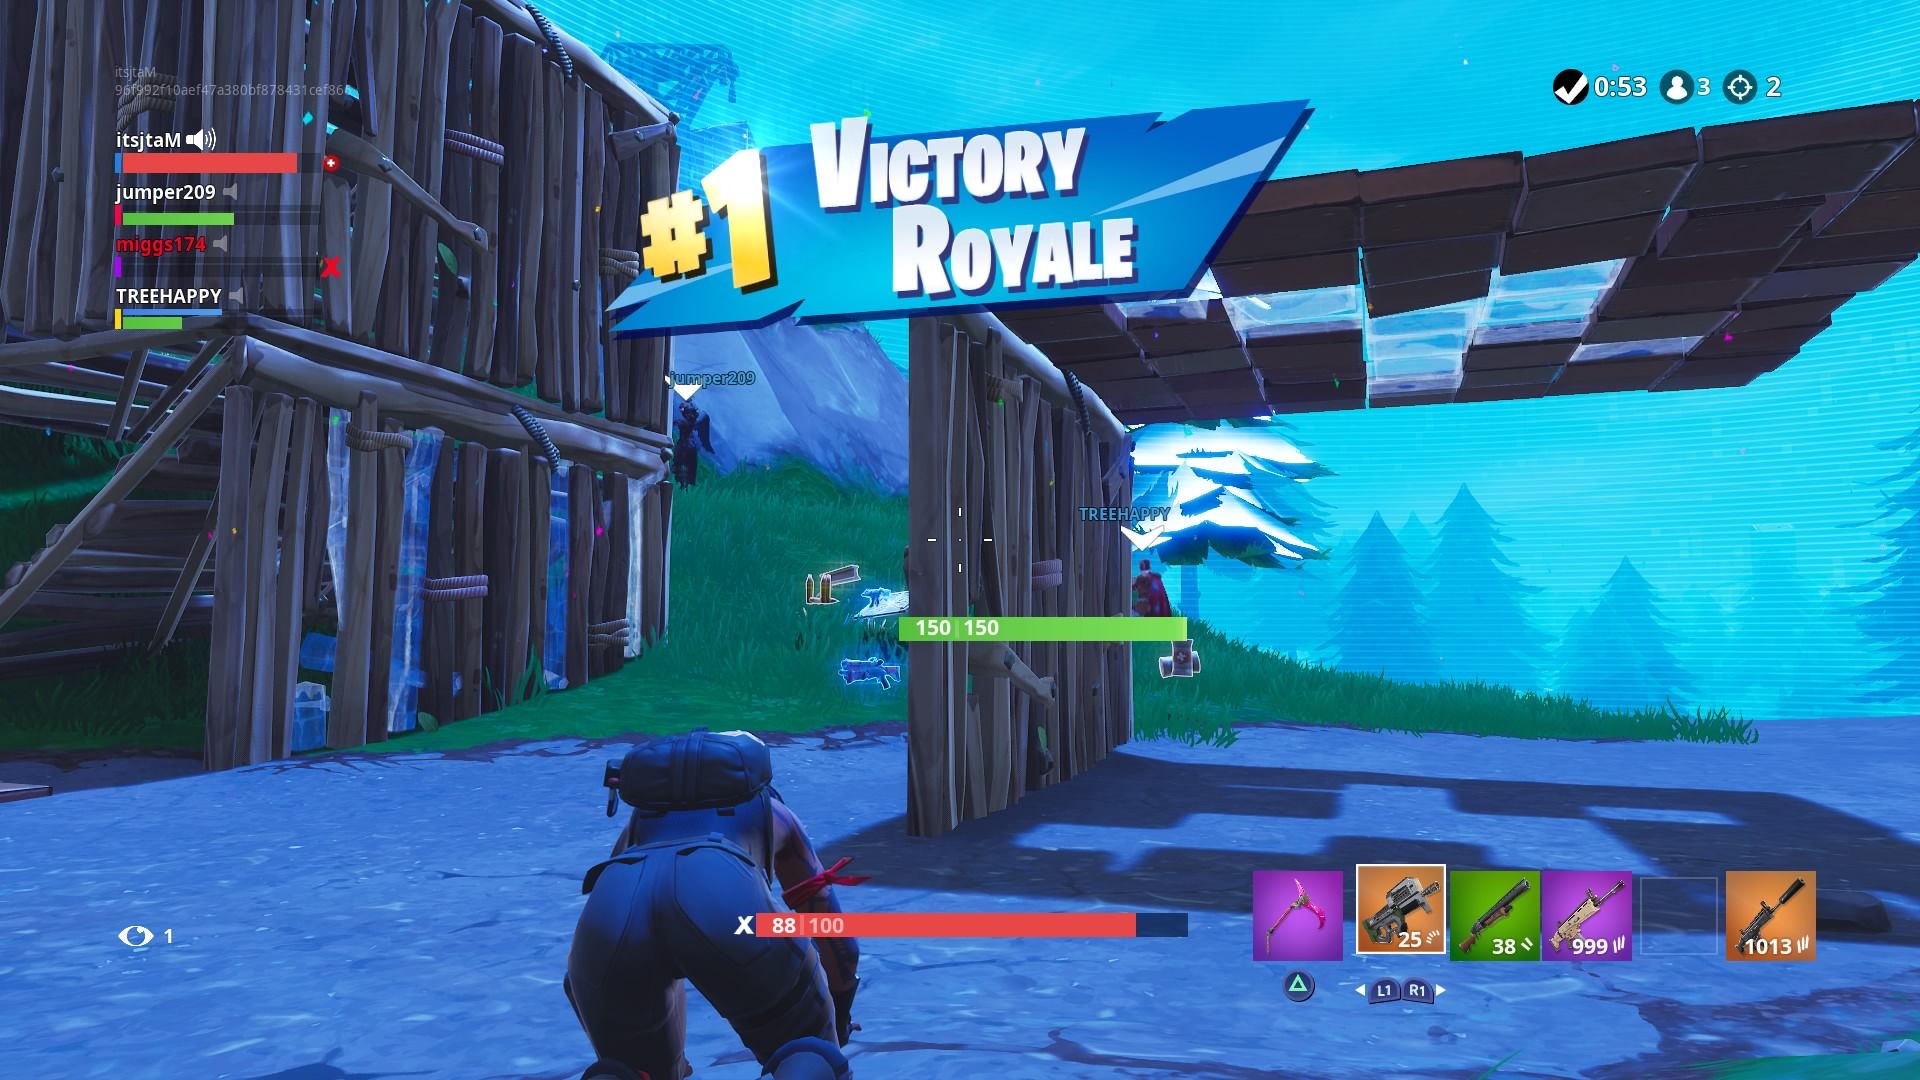 fortnite victory wallpaper 65470